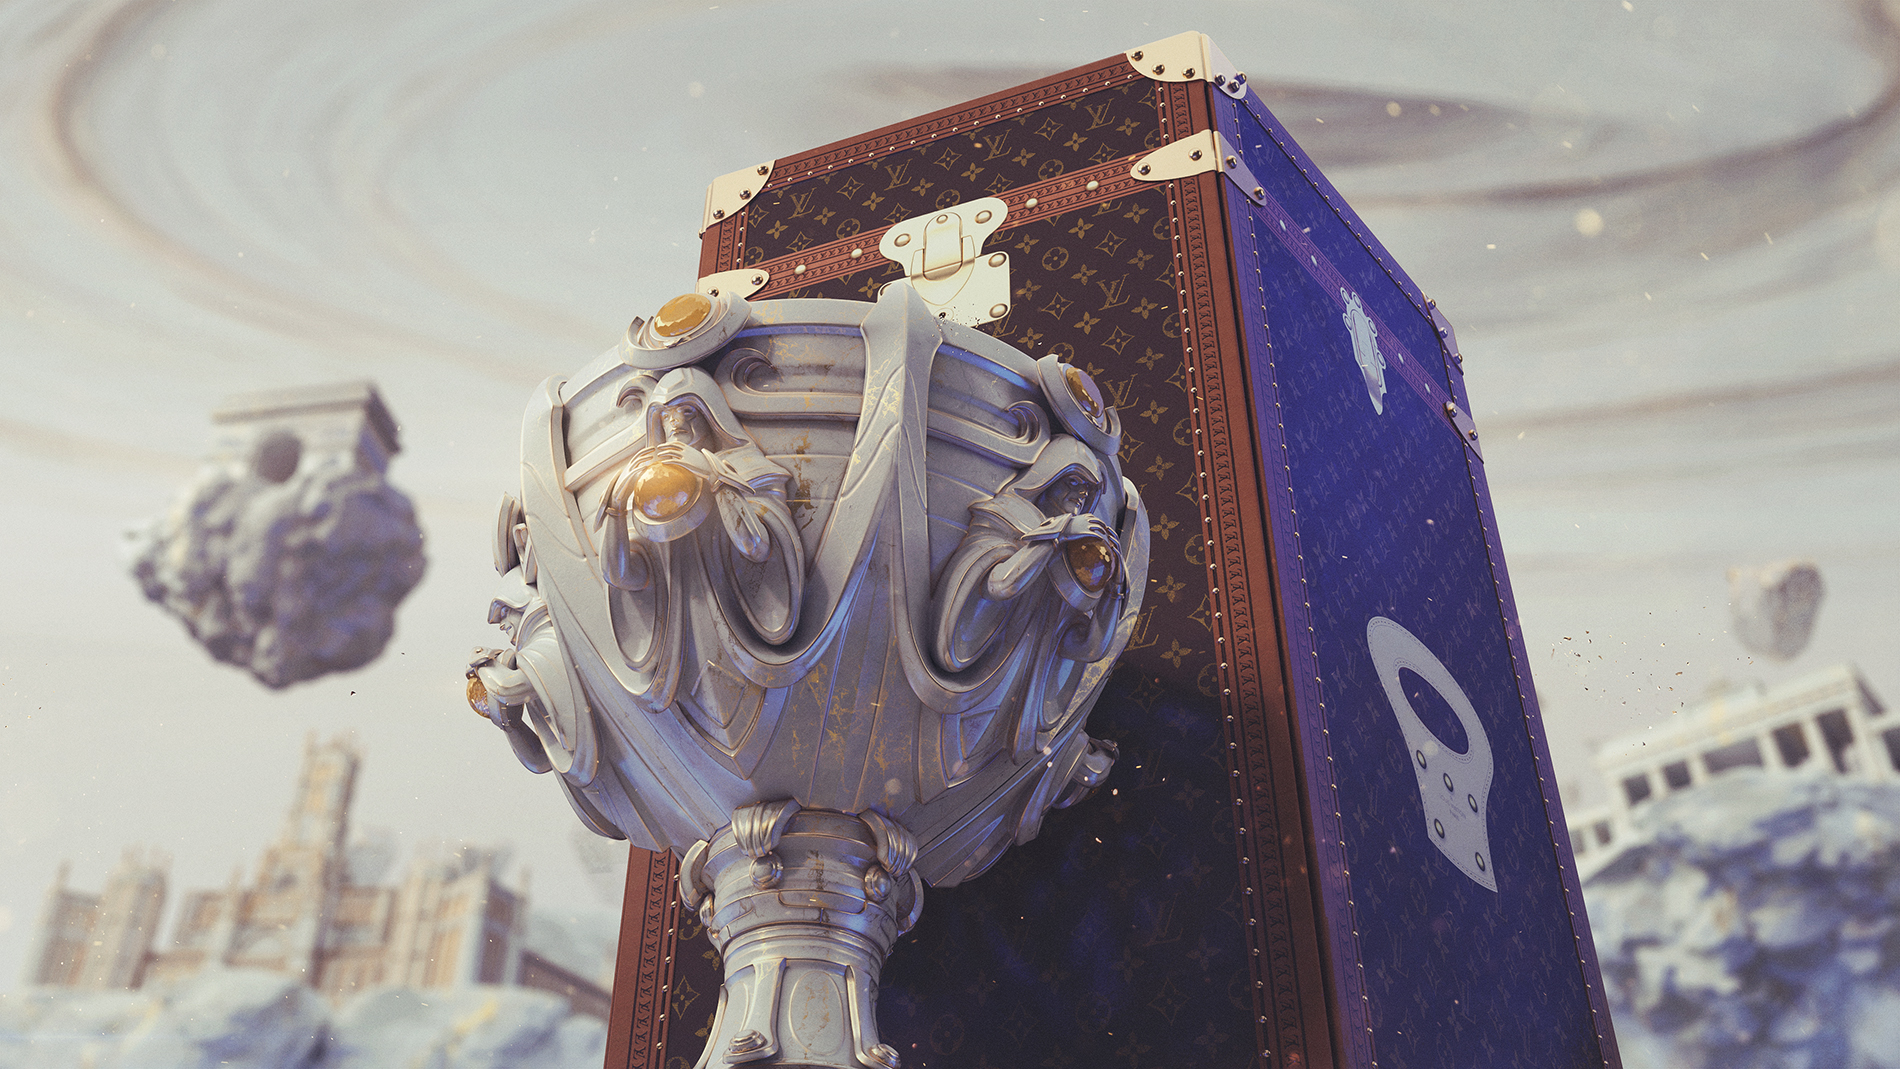 The Worlds trophy sits in front of a Louis Vuitton trunk